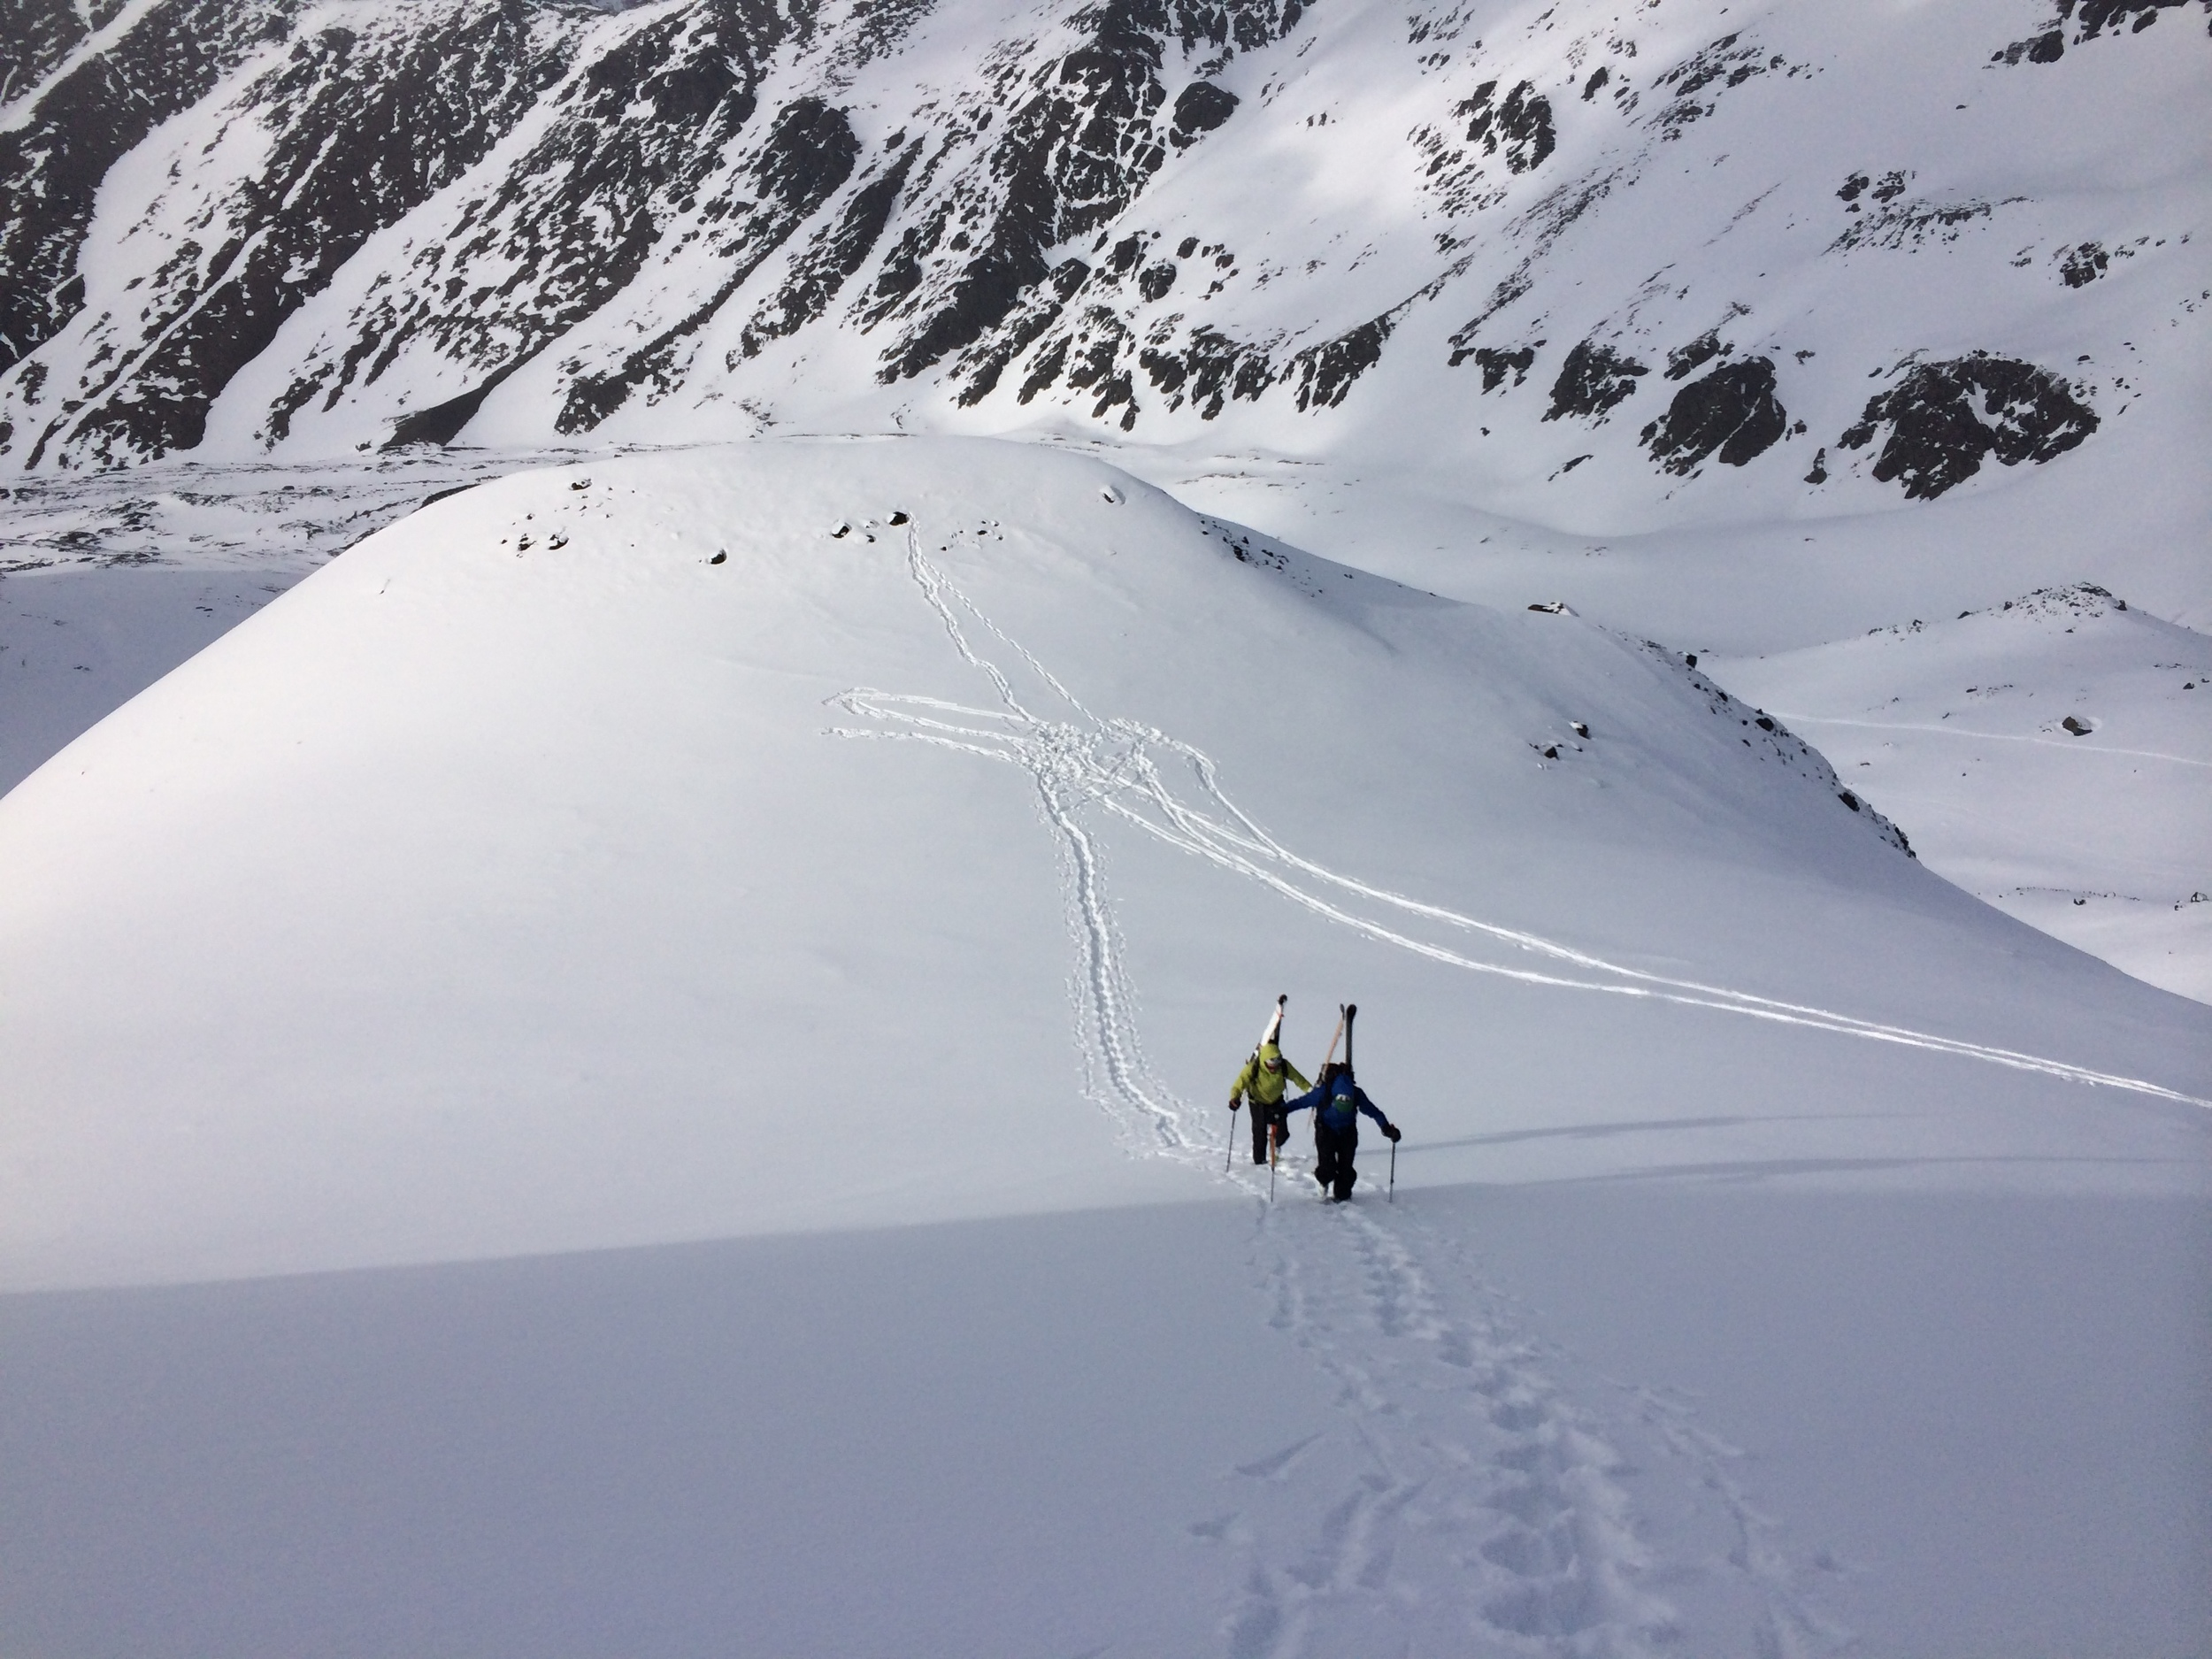 Backcountry skiing in the Chugach Mountains, Alaska. (Photo by Emily Stifler Wolfe)